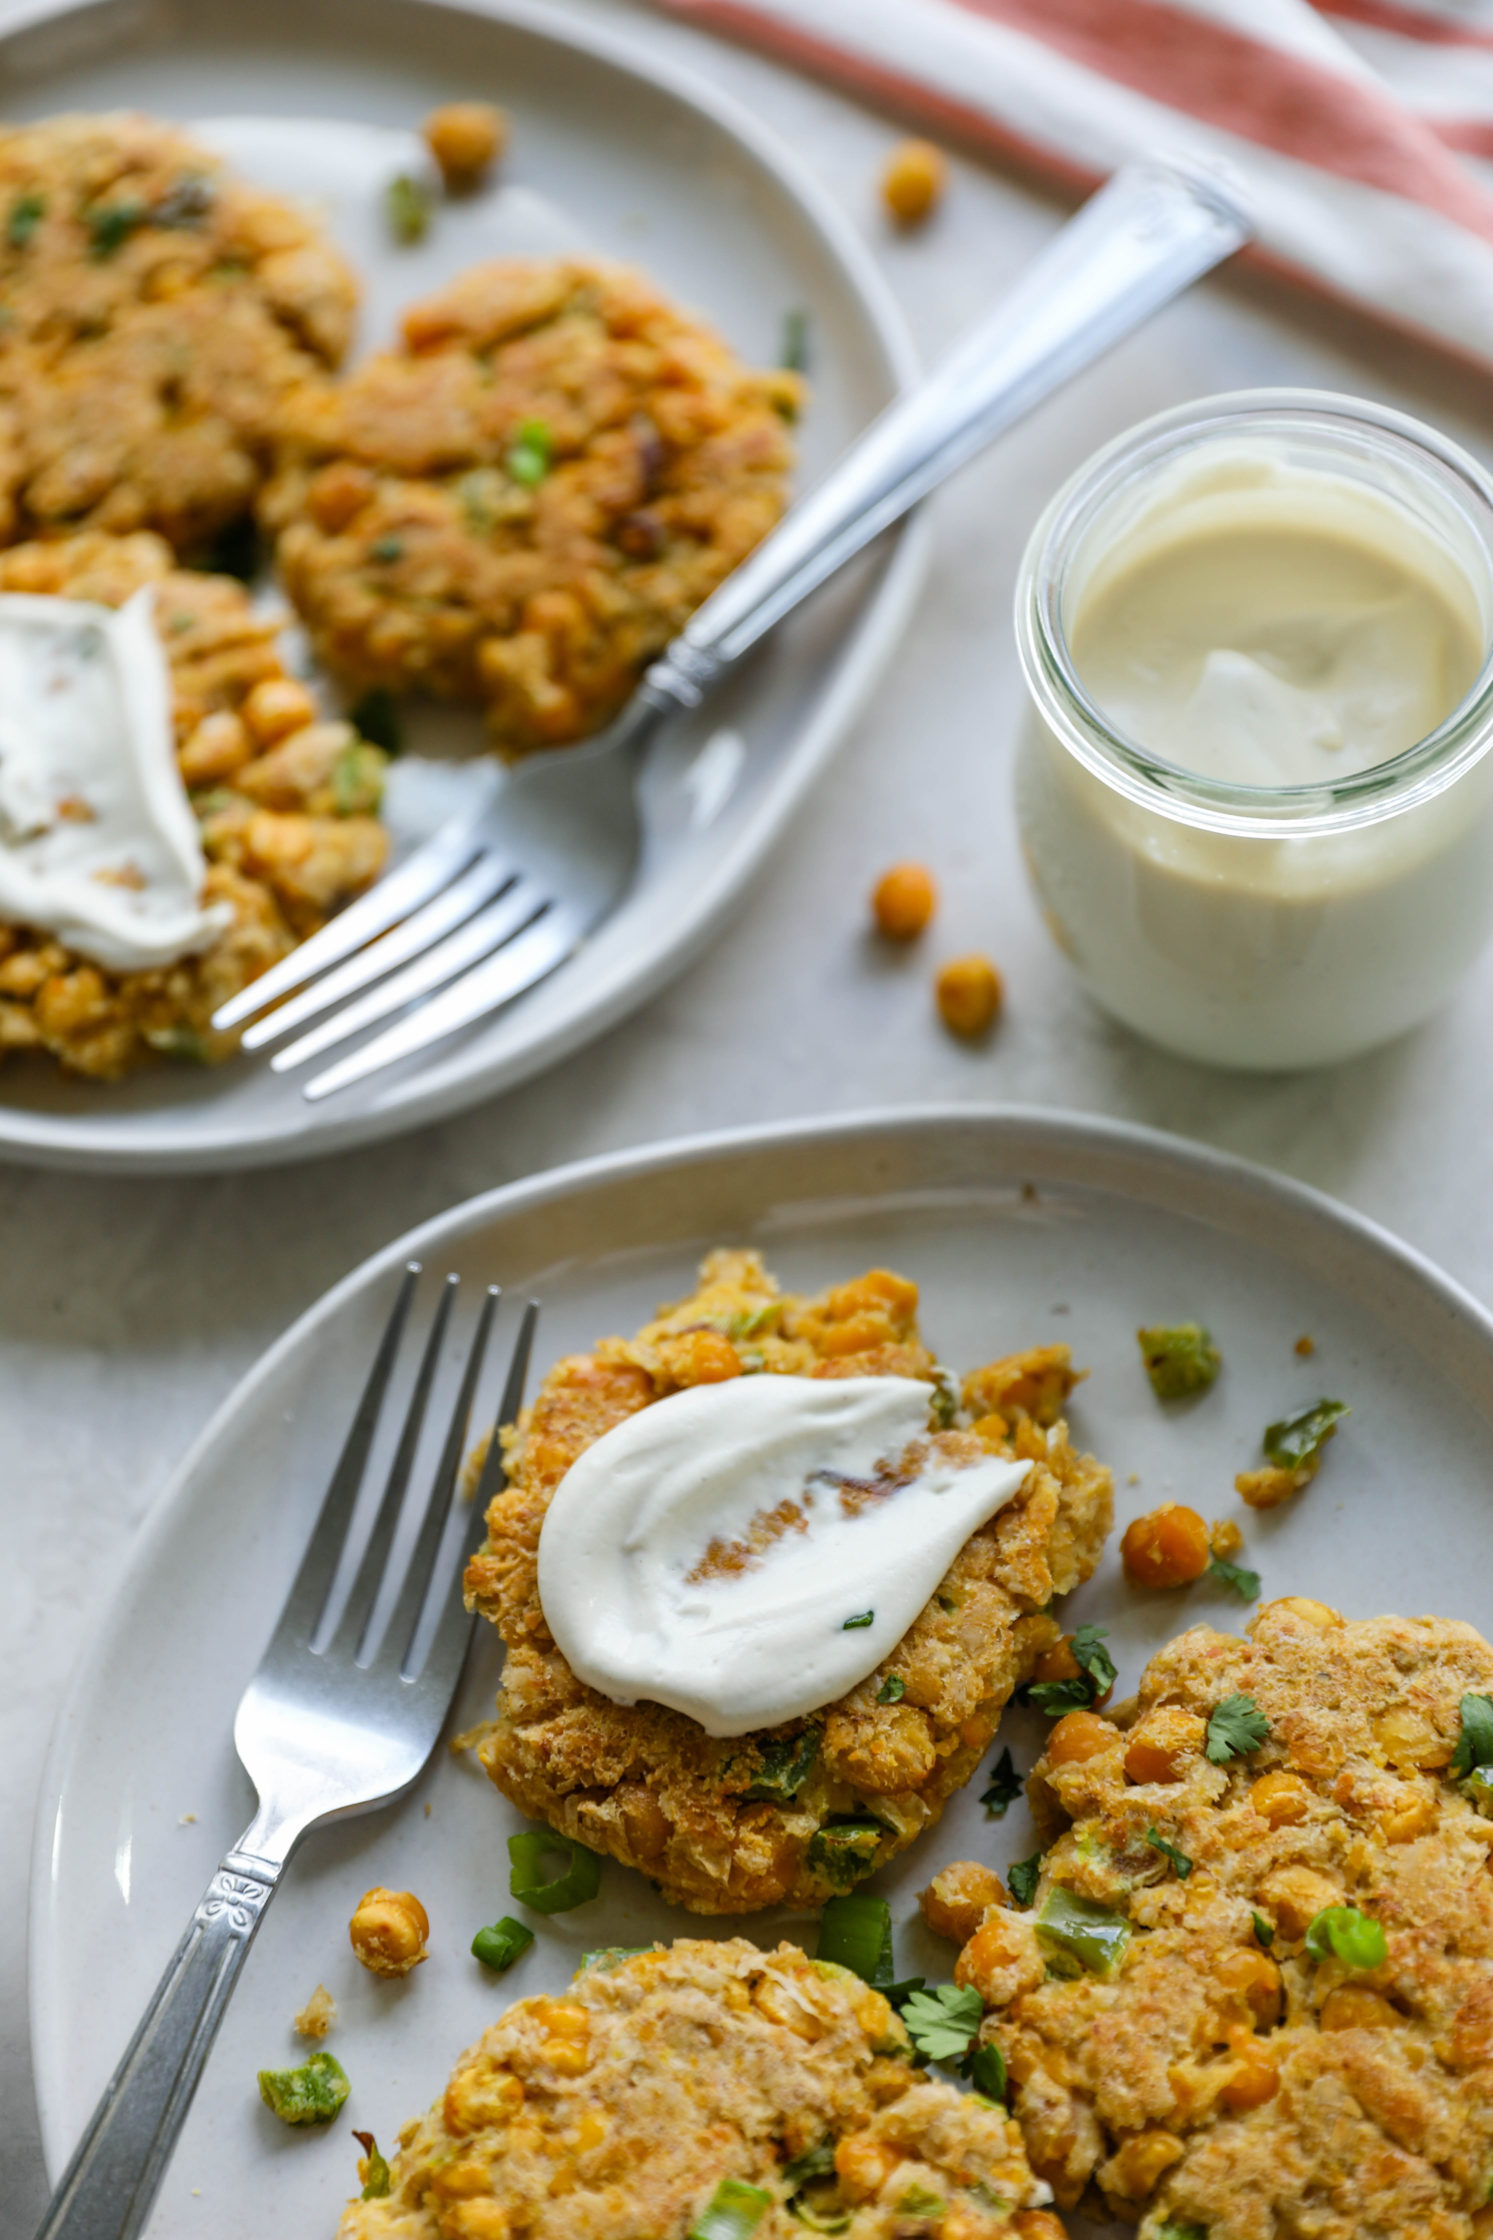 Chickpea Patties with Cashew Mayonnaise by Flora & Vino